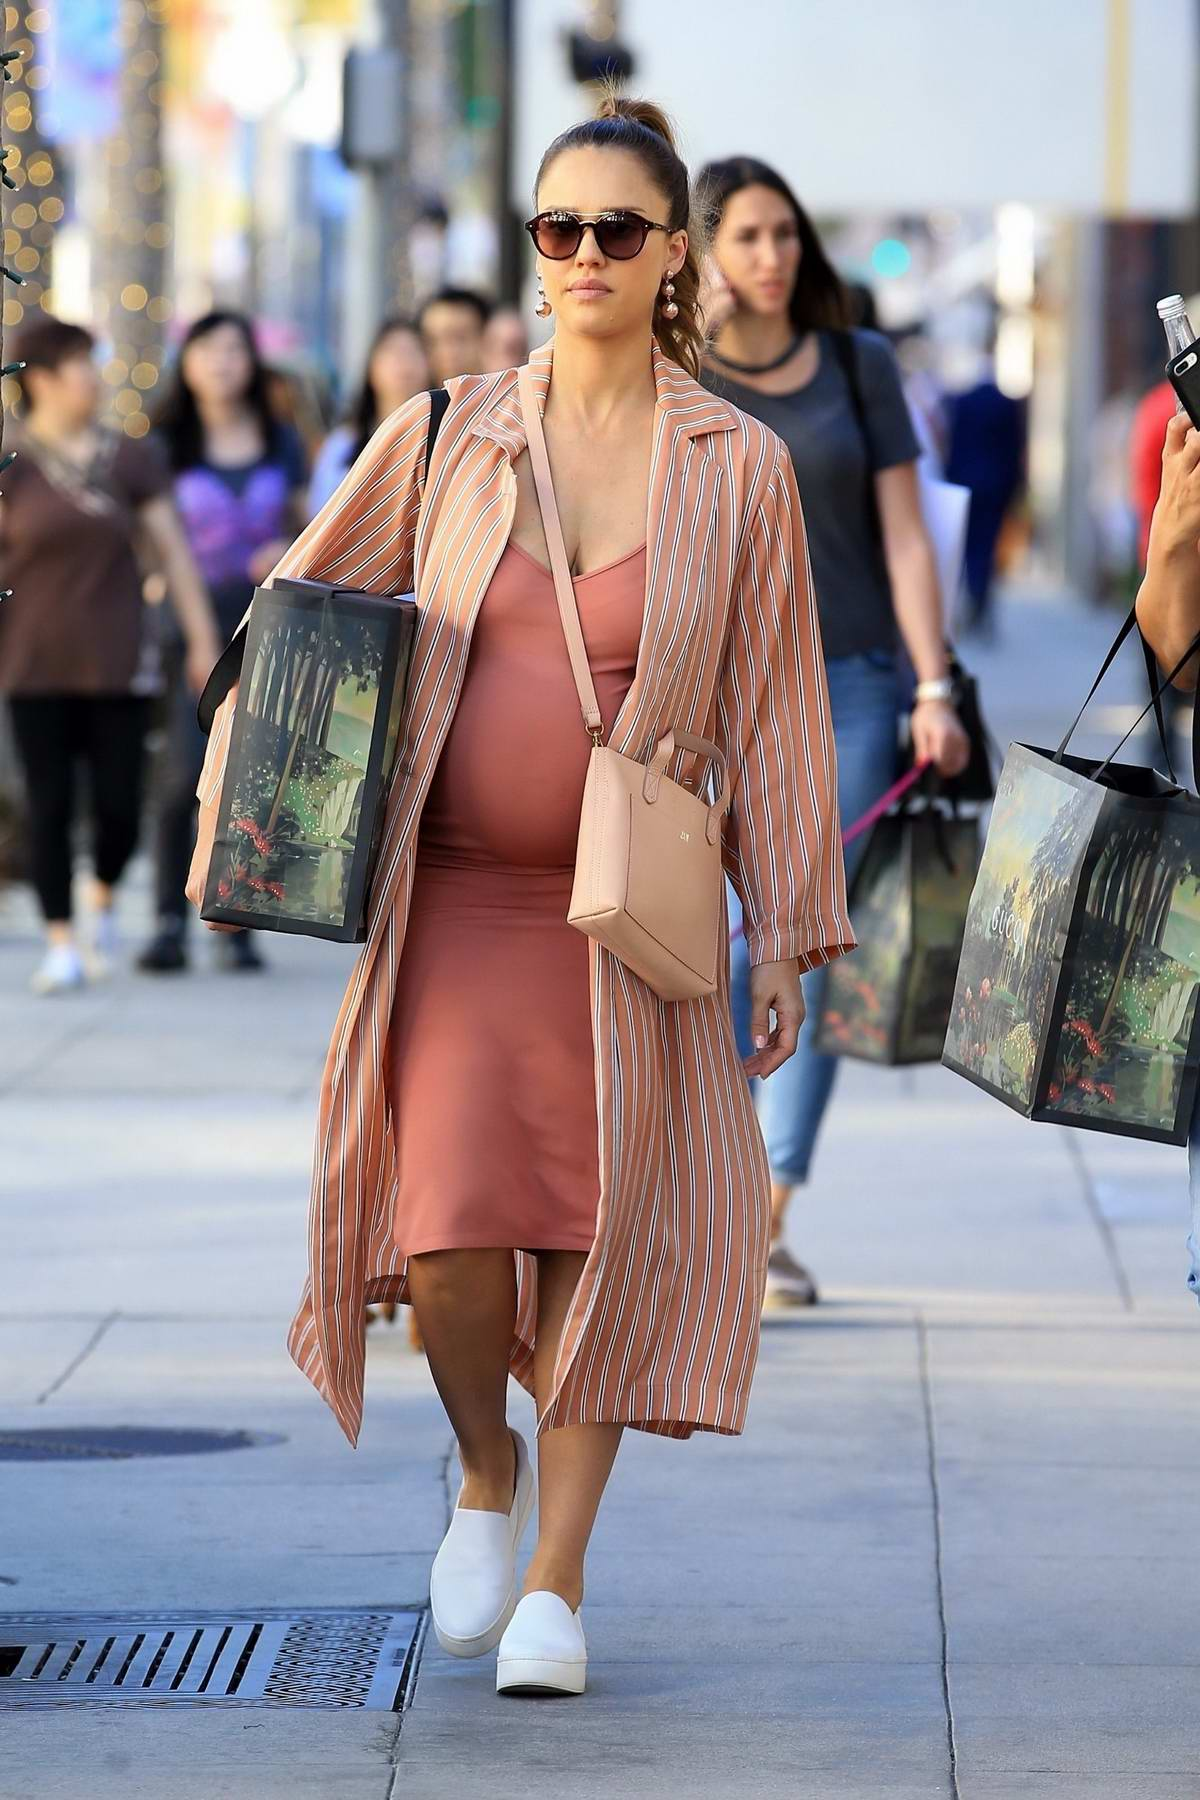 Jessica Alba in a peach dress grabs a few items at Gucci on Rodeo Drive in Beverly Hills, Los Angeles